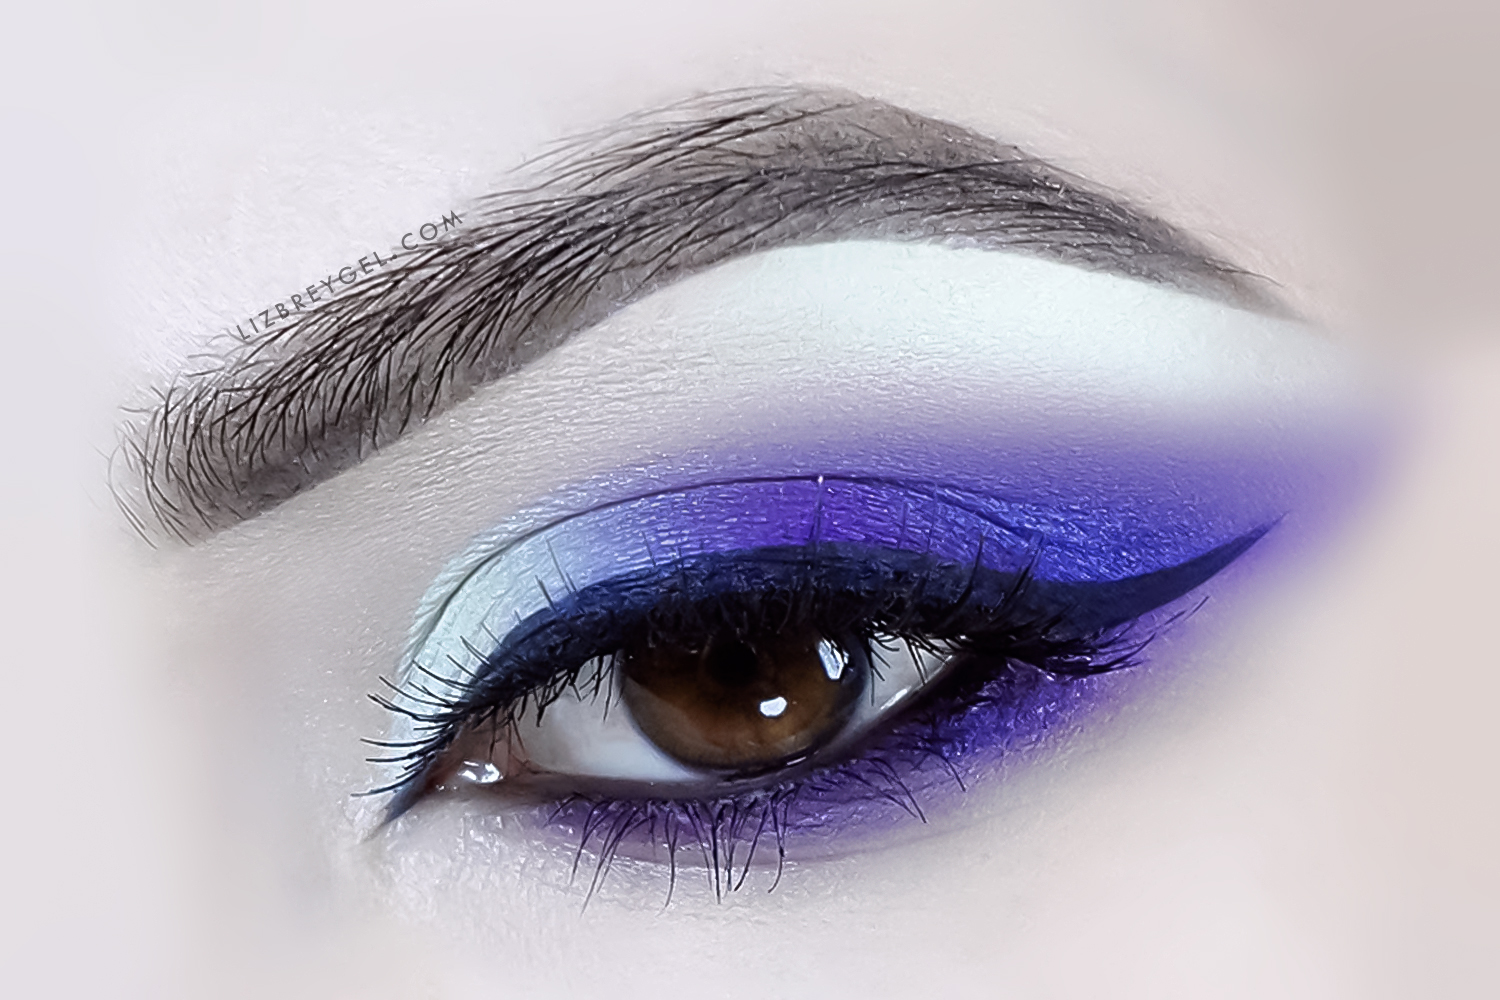 a close up picture of eye with dark and smoky makeup look